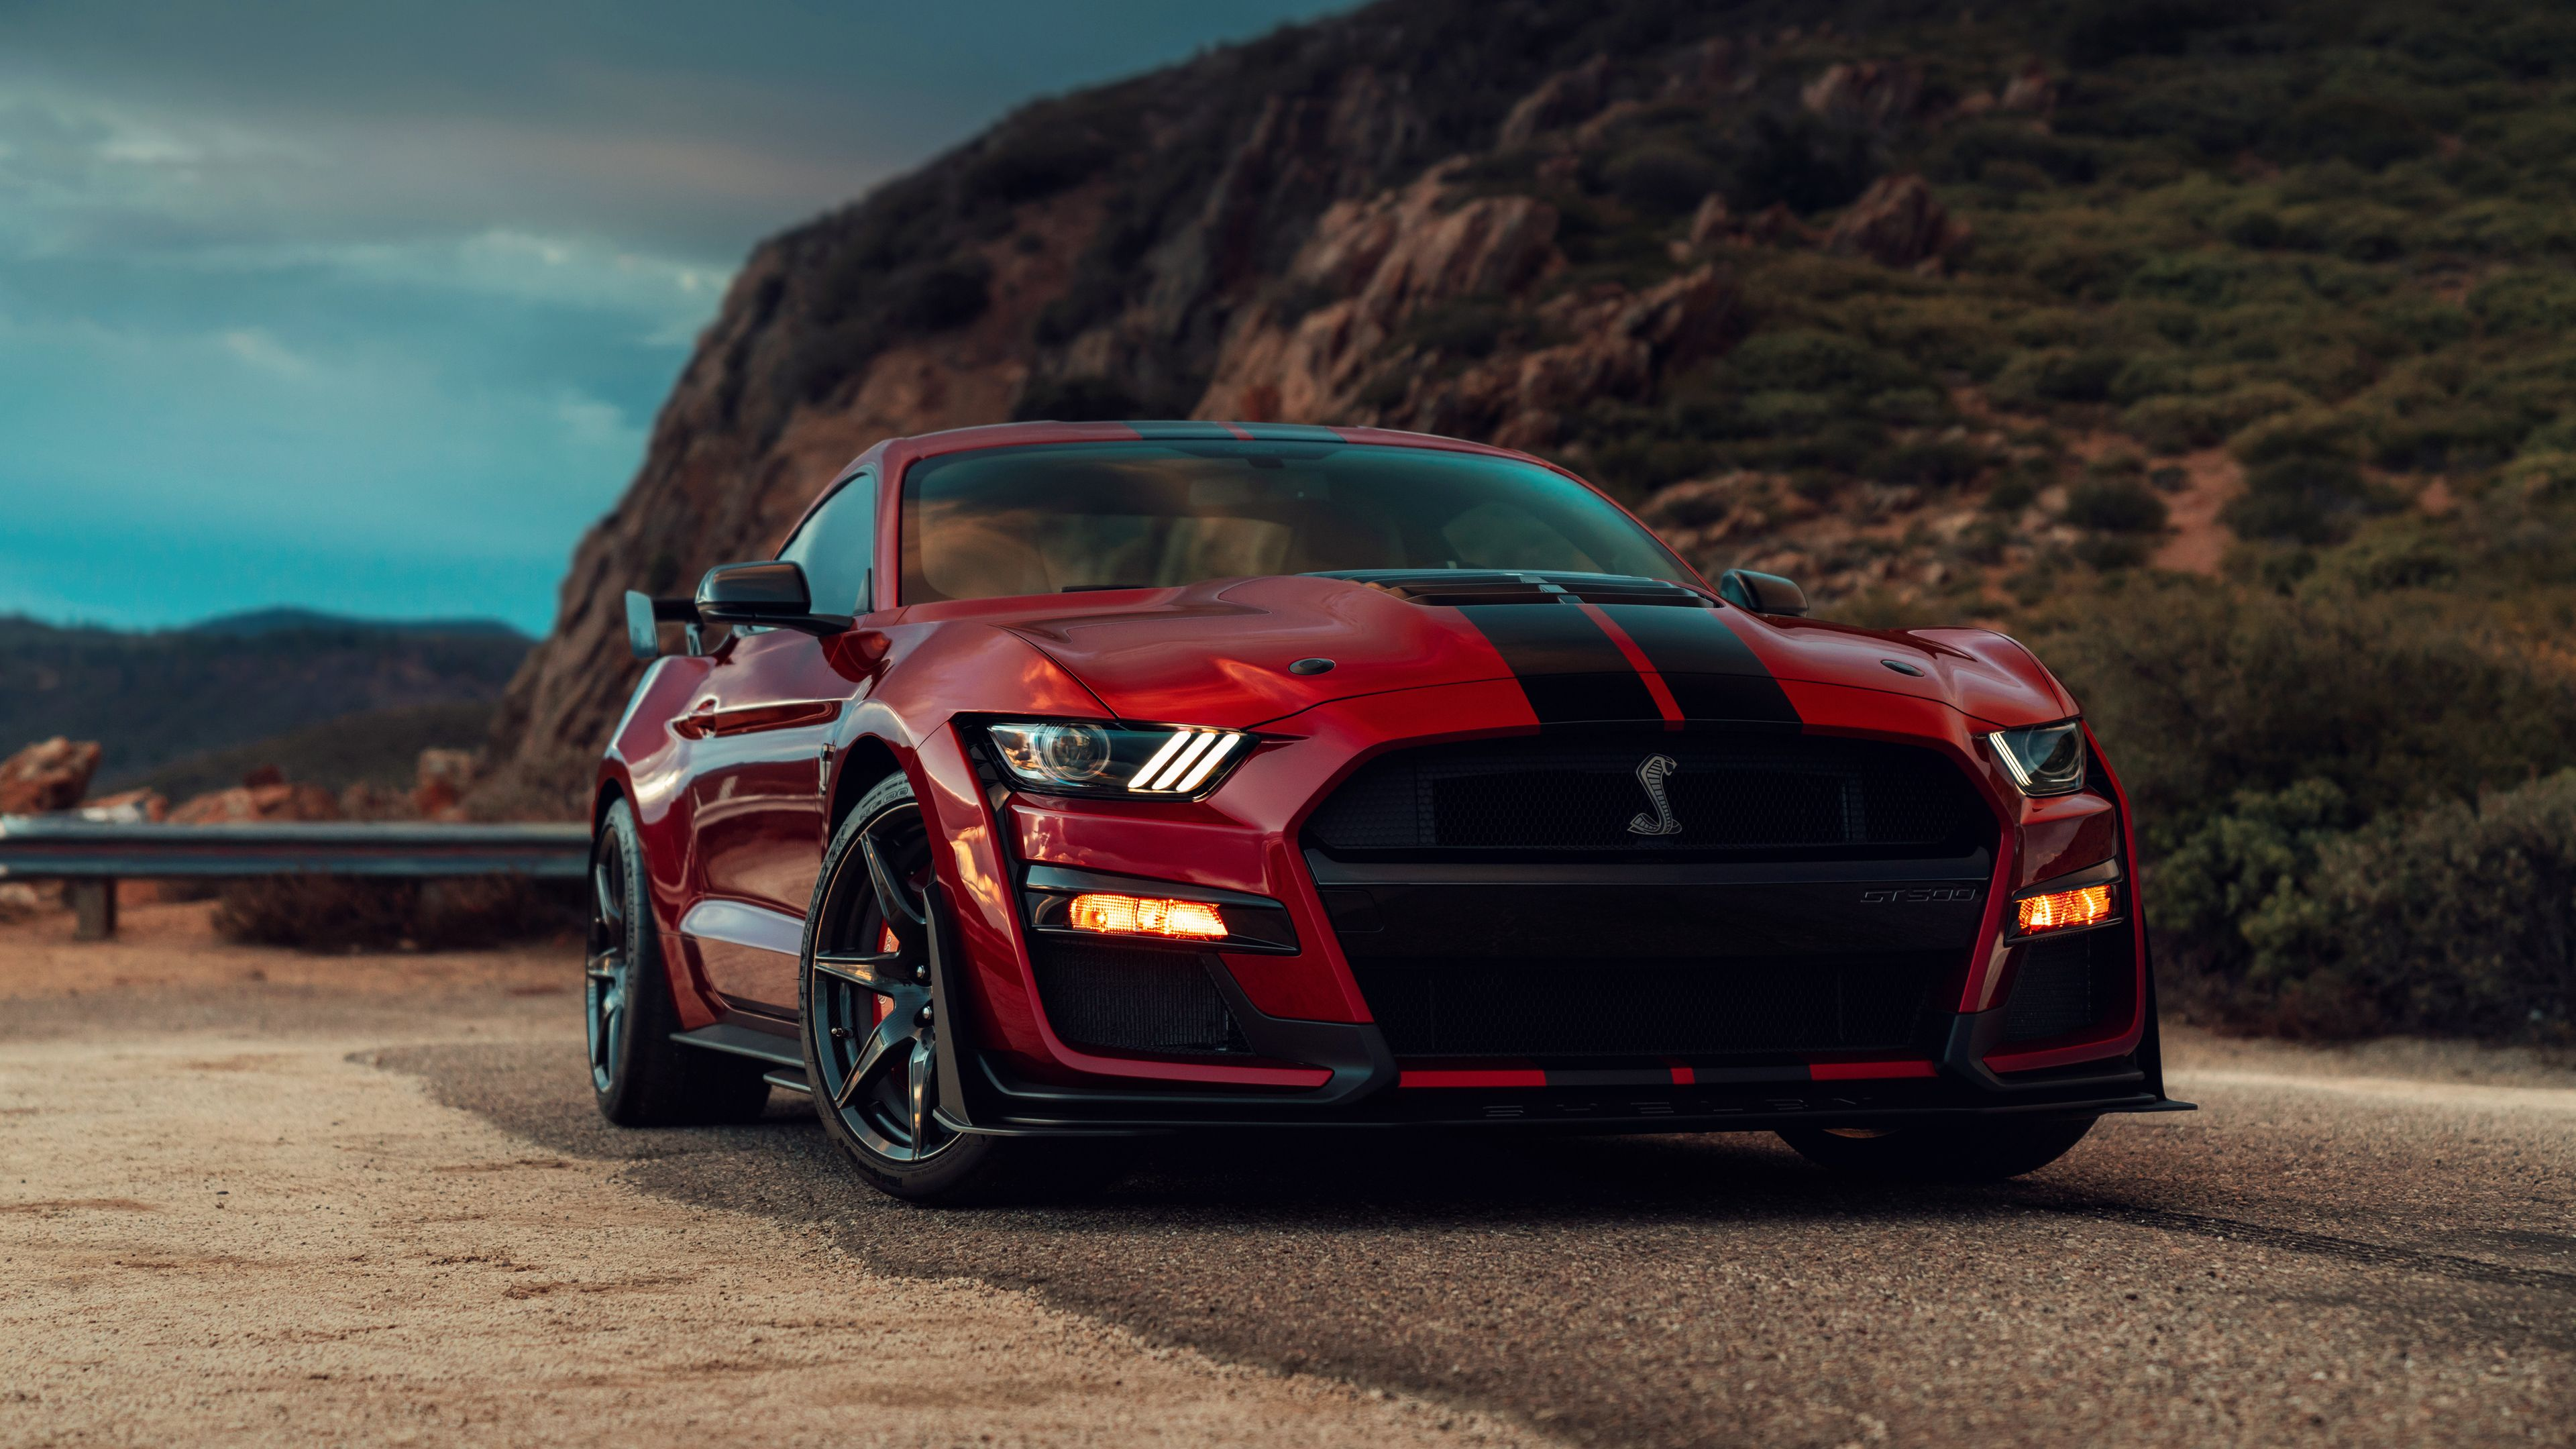 Wallpaper 4k 2020 Ford Mustang Shelby Gt500 4k 2019 Cars